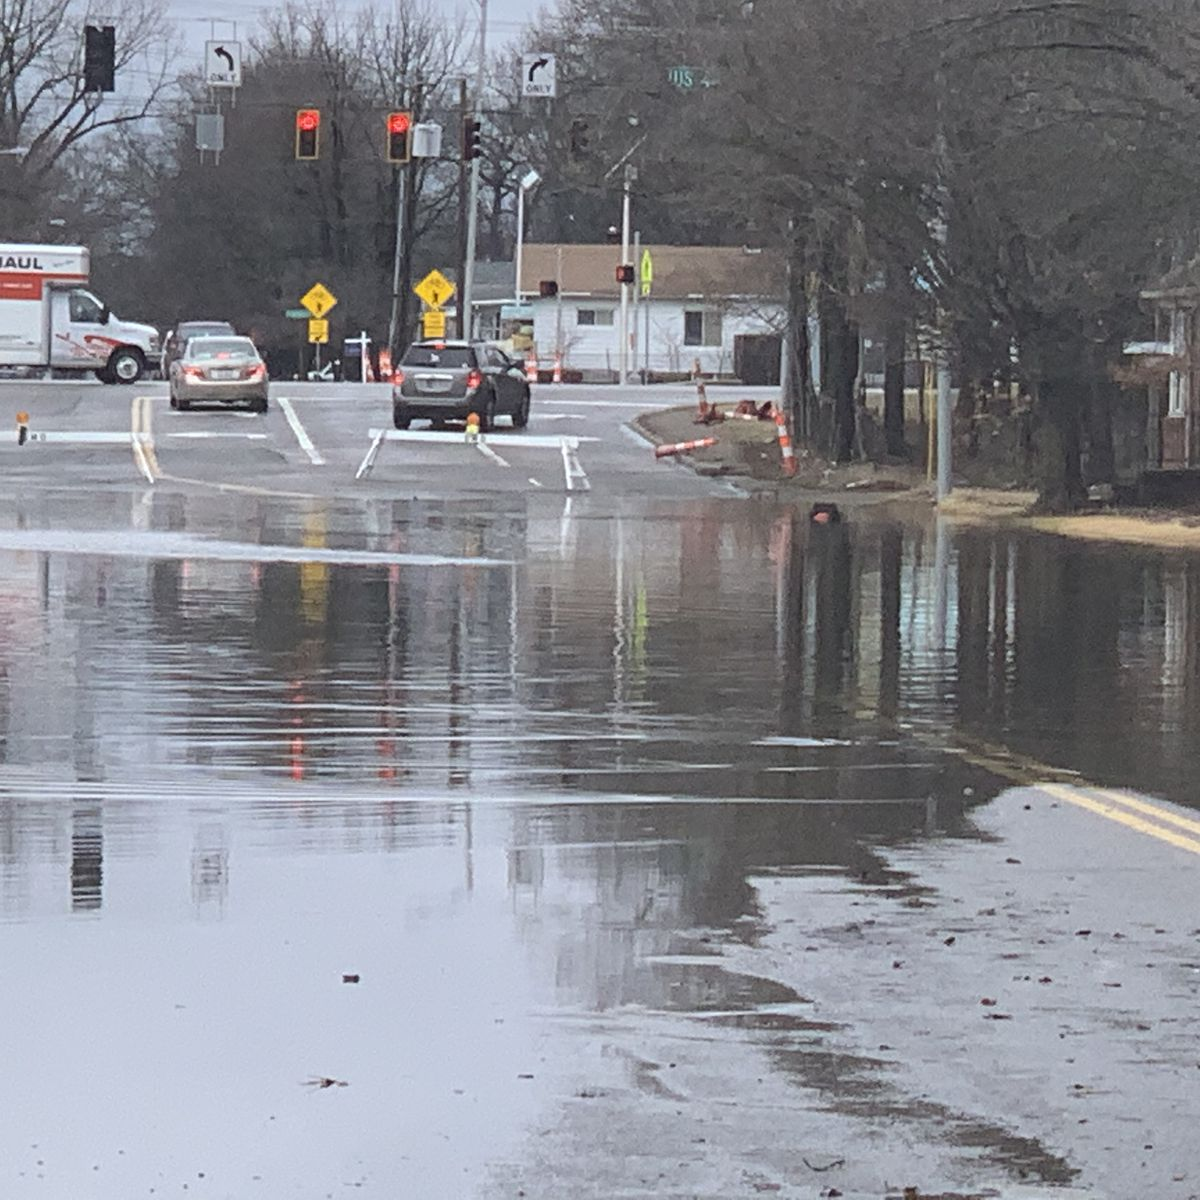 Evansville streets left flooded due to heavy rain